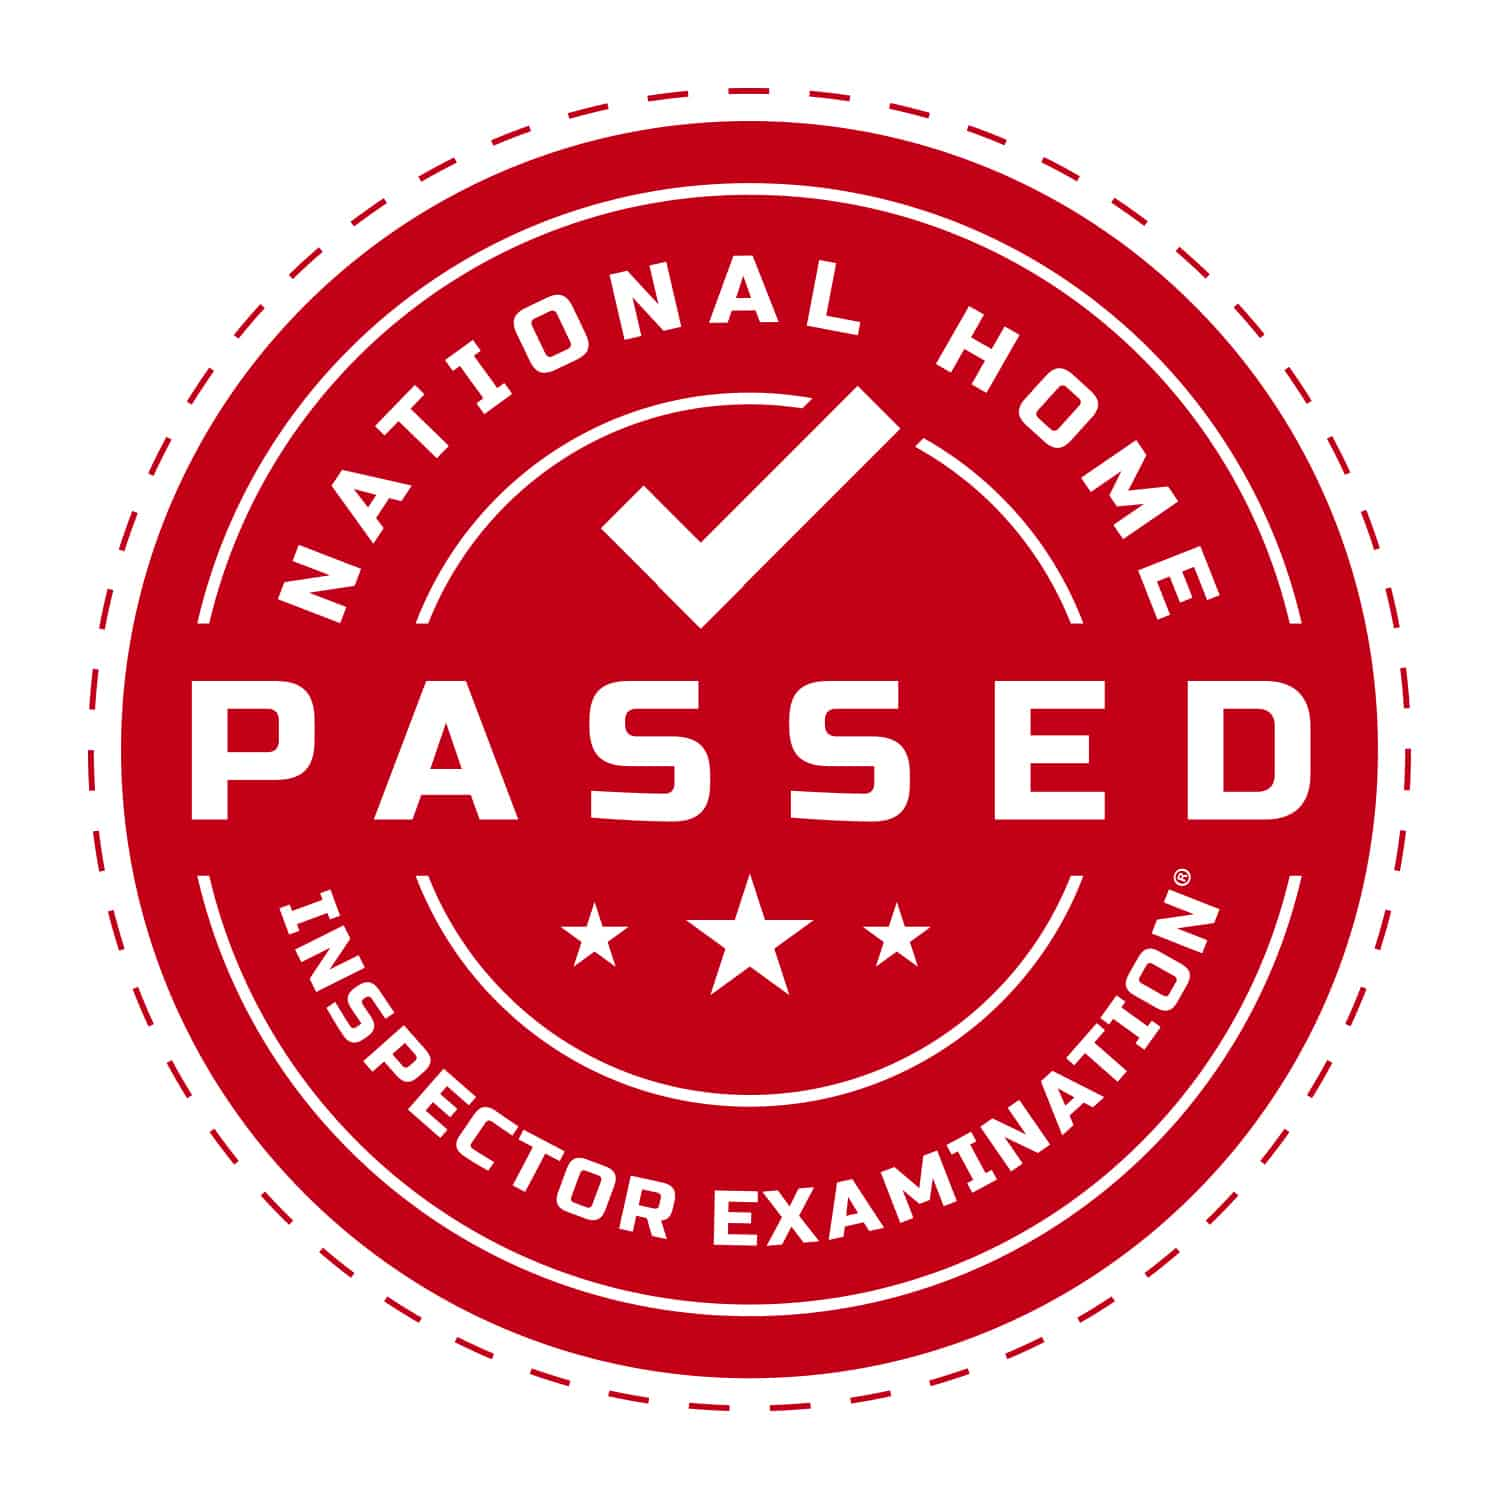 Certified National Home Inspection Examination